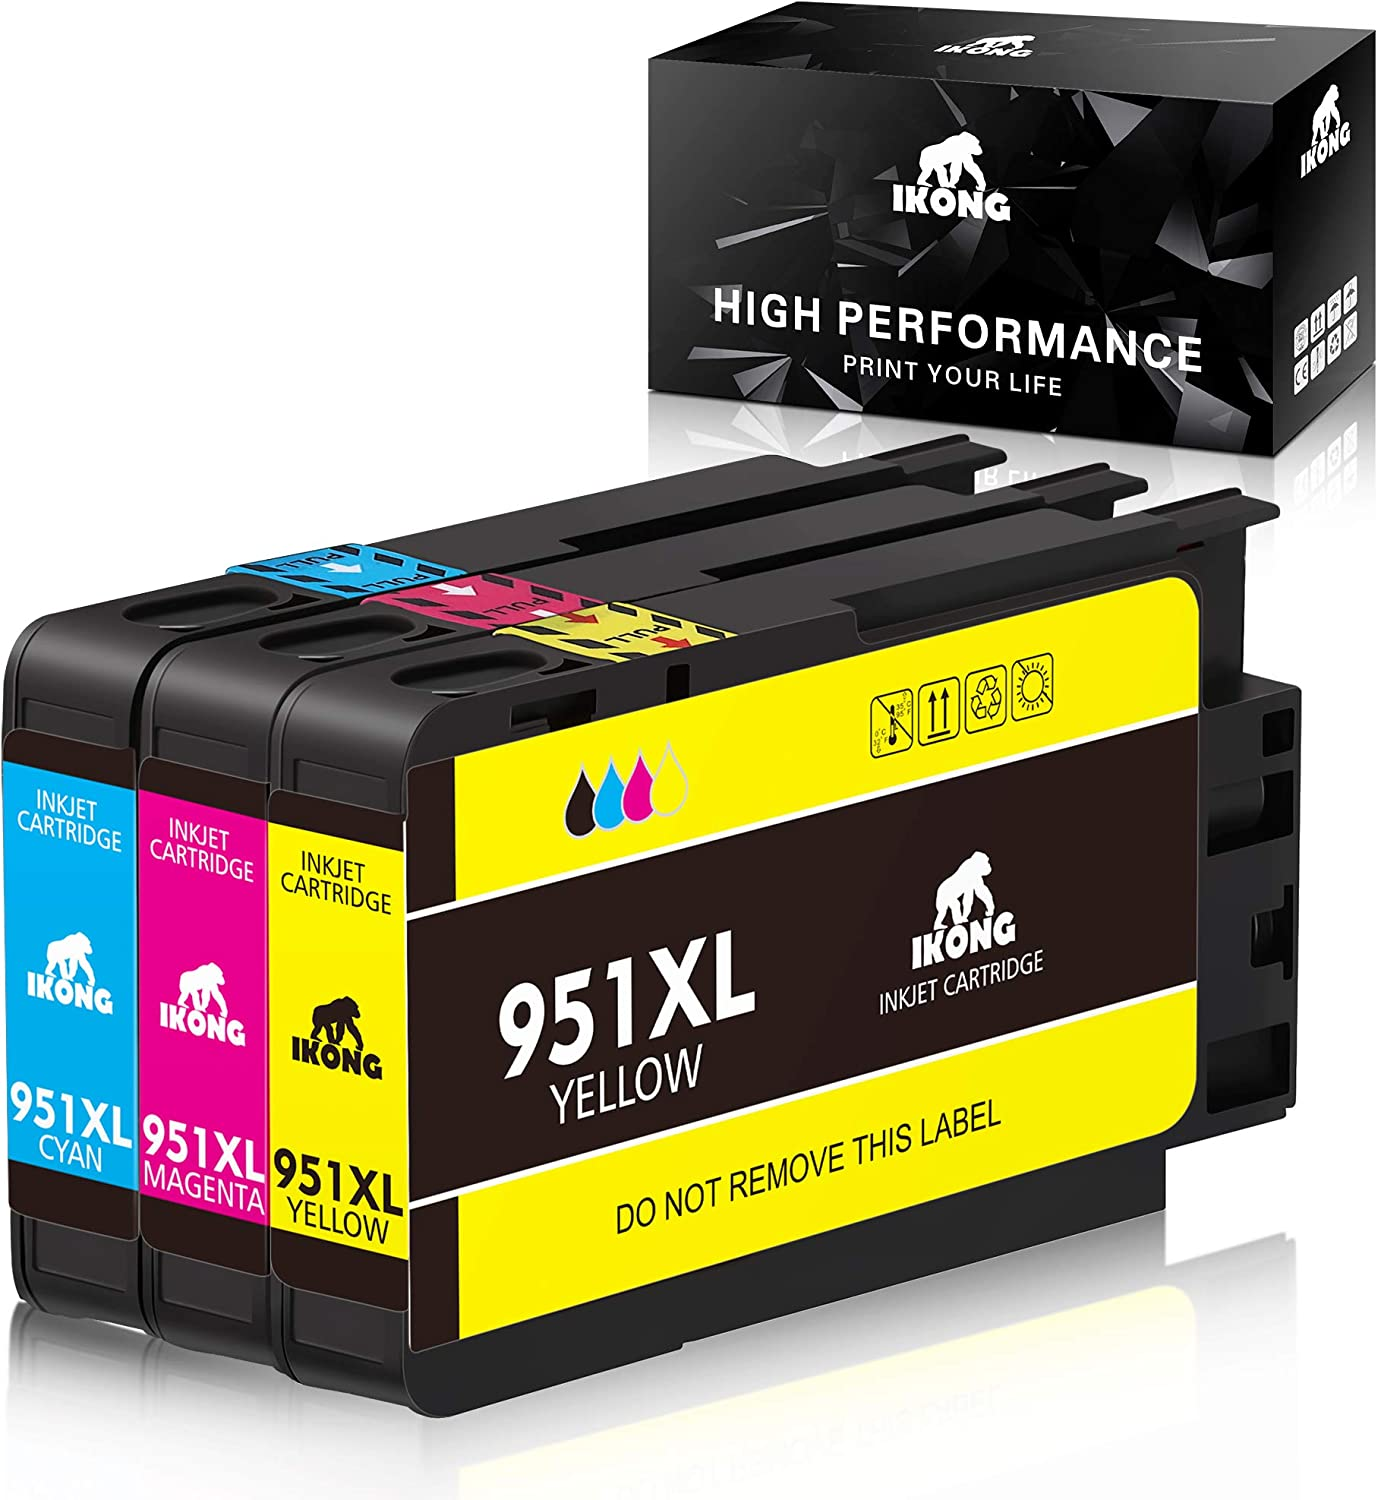 IKONG Compatible Ink Cartridge Replacement for HP 951 XL Ink Cartridge Compatible with HP Officejet Pro 8600 8610 8620 8100 8630 8660 8640 8615 8625 (1 Cyan 1 Magenta 1 Yellow)